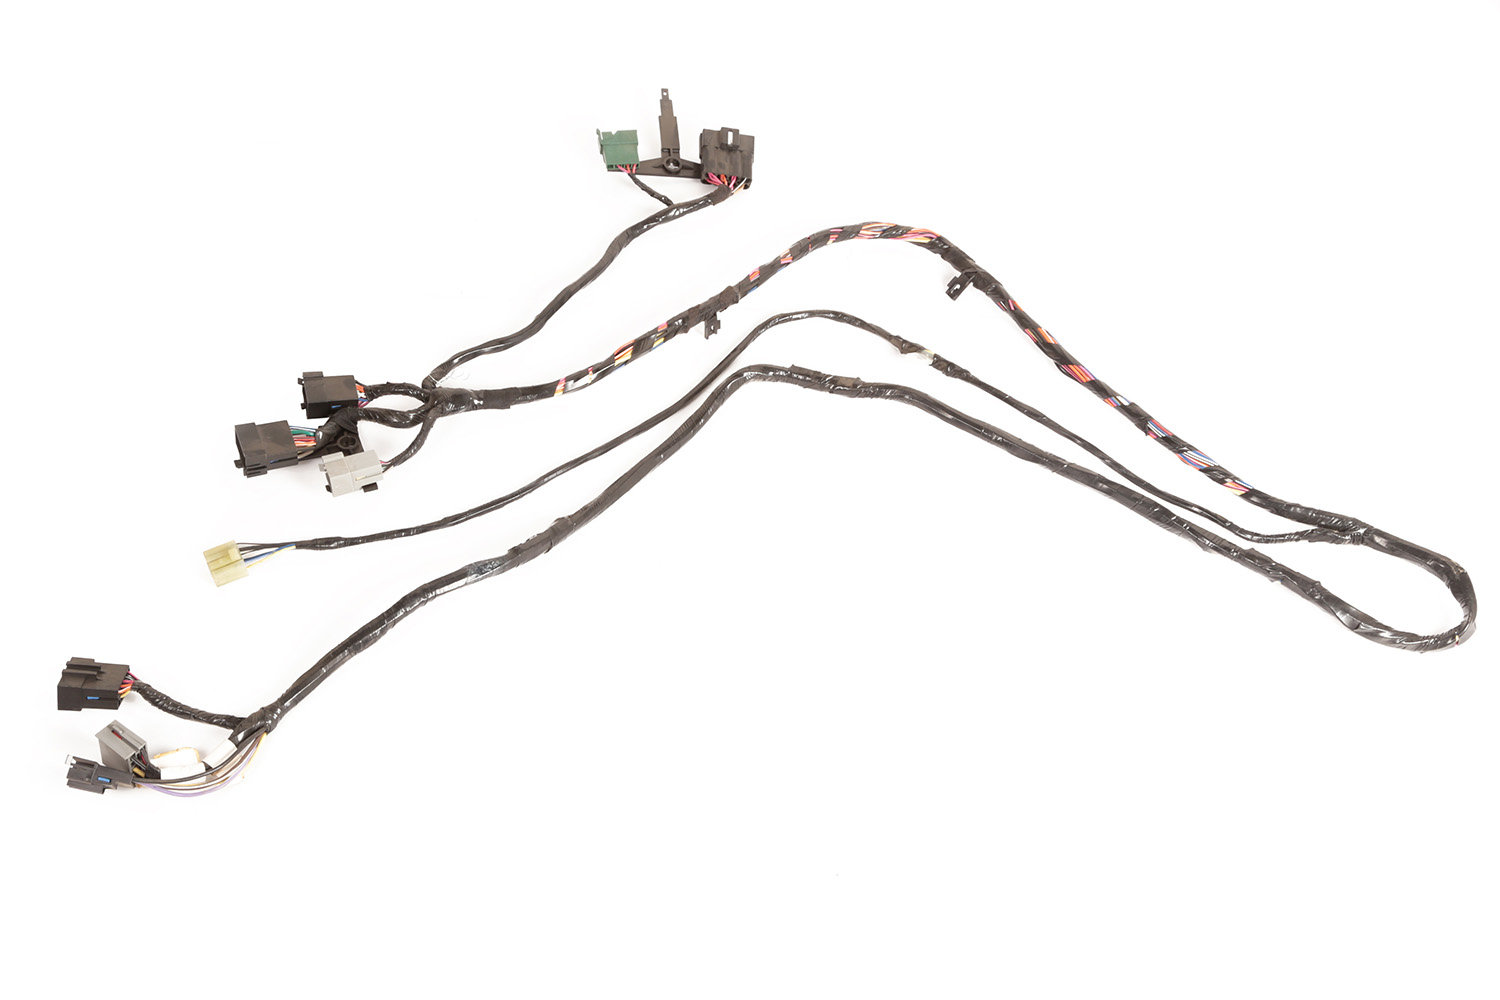 OMIX-ADA 56009881 Wiring Assembly for 1996 Jeep® Cherokee